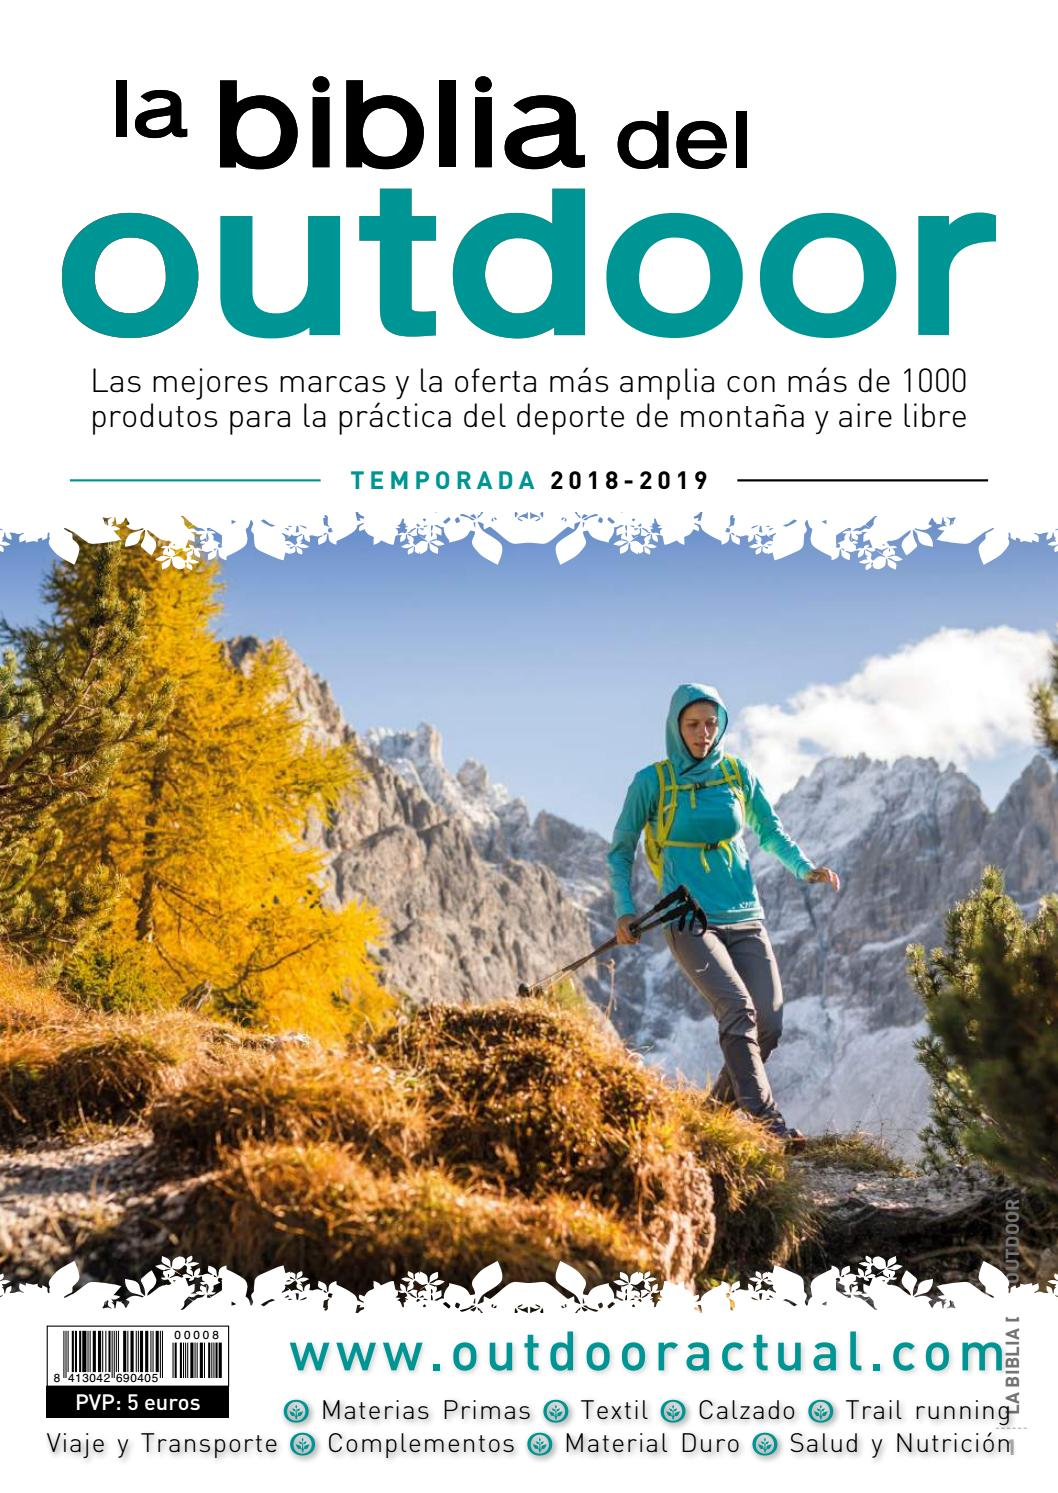 f9e35e1c1ec2 La Biblia del Outdoor 2018-19 by Outdoor Actual - issuu